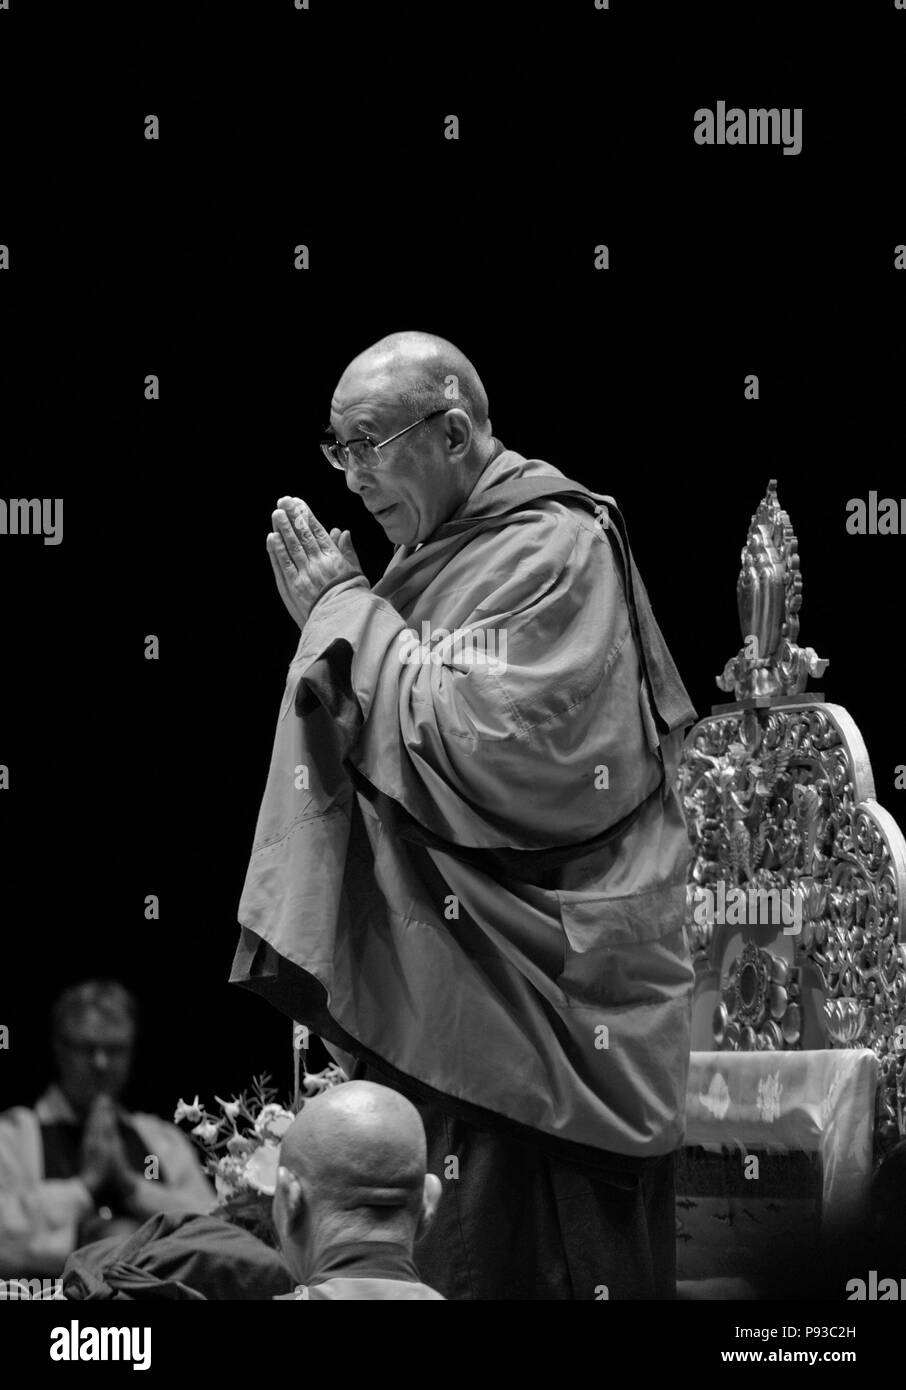 The 14th DALAI LAMA of Tibet teaches Buddhism sponsored by the TIBETAN MONGOLIAN CULTURAL CENTER - BLOOMINGTON, INDIANA - Stock Image